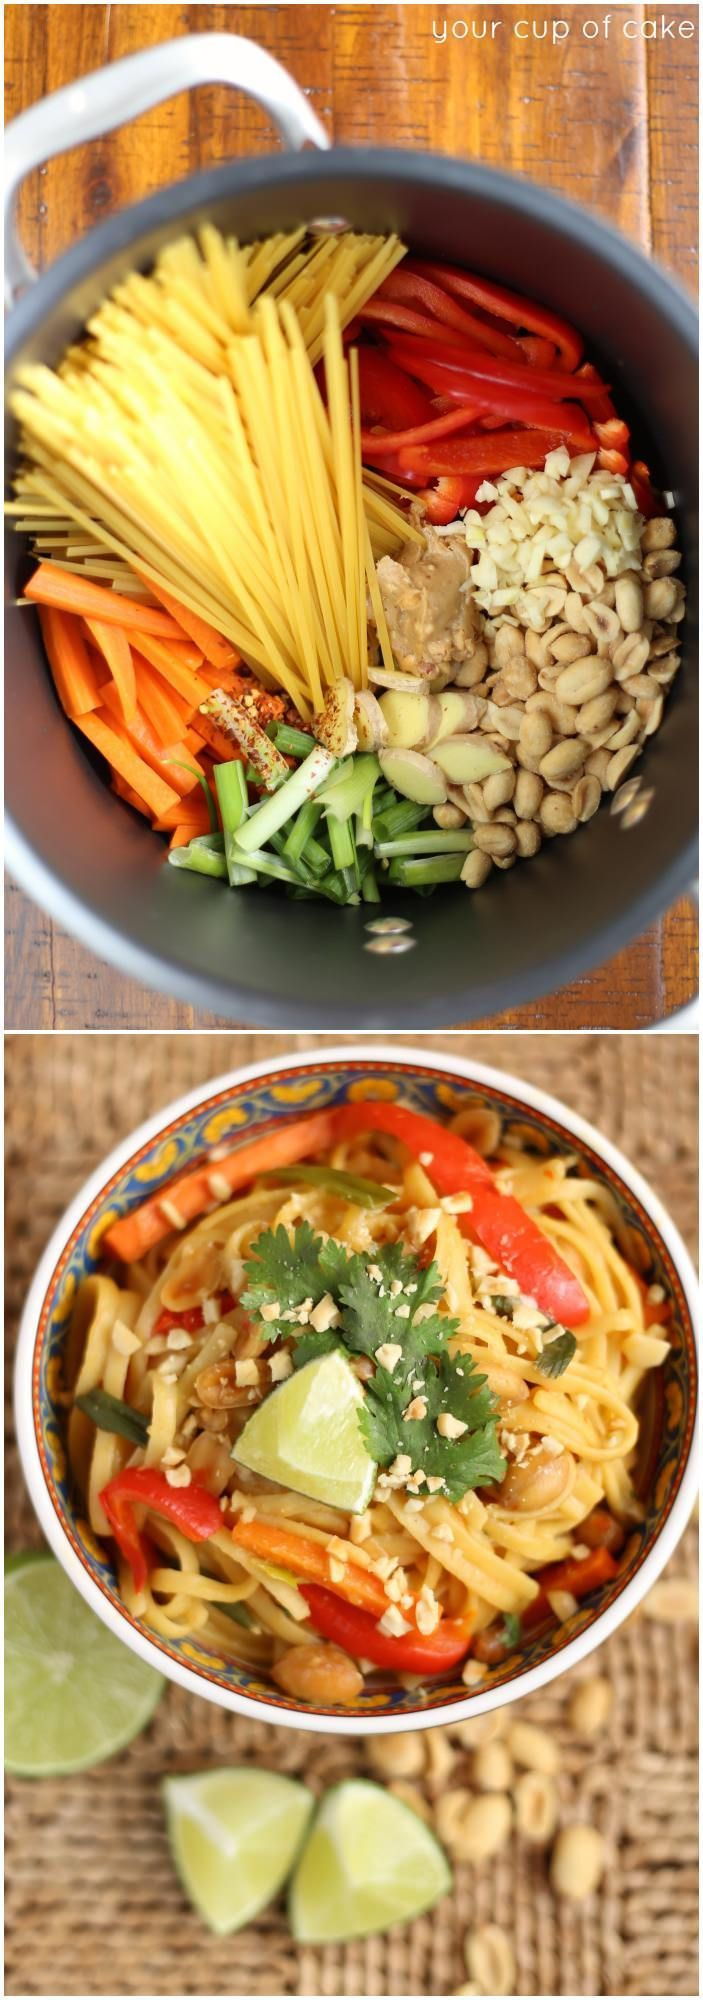 One Pot Thai Peanut Pasta - Your Cup of Cake